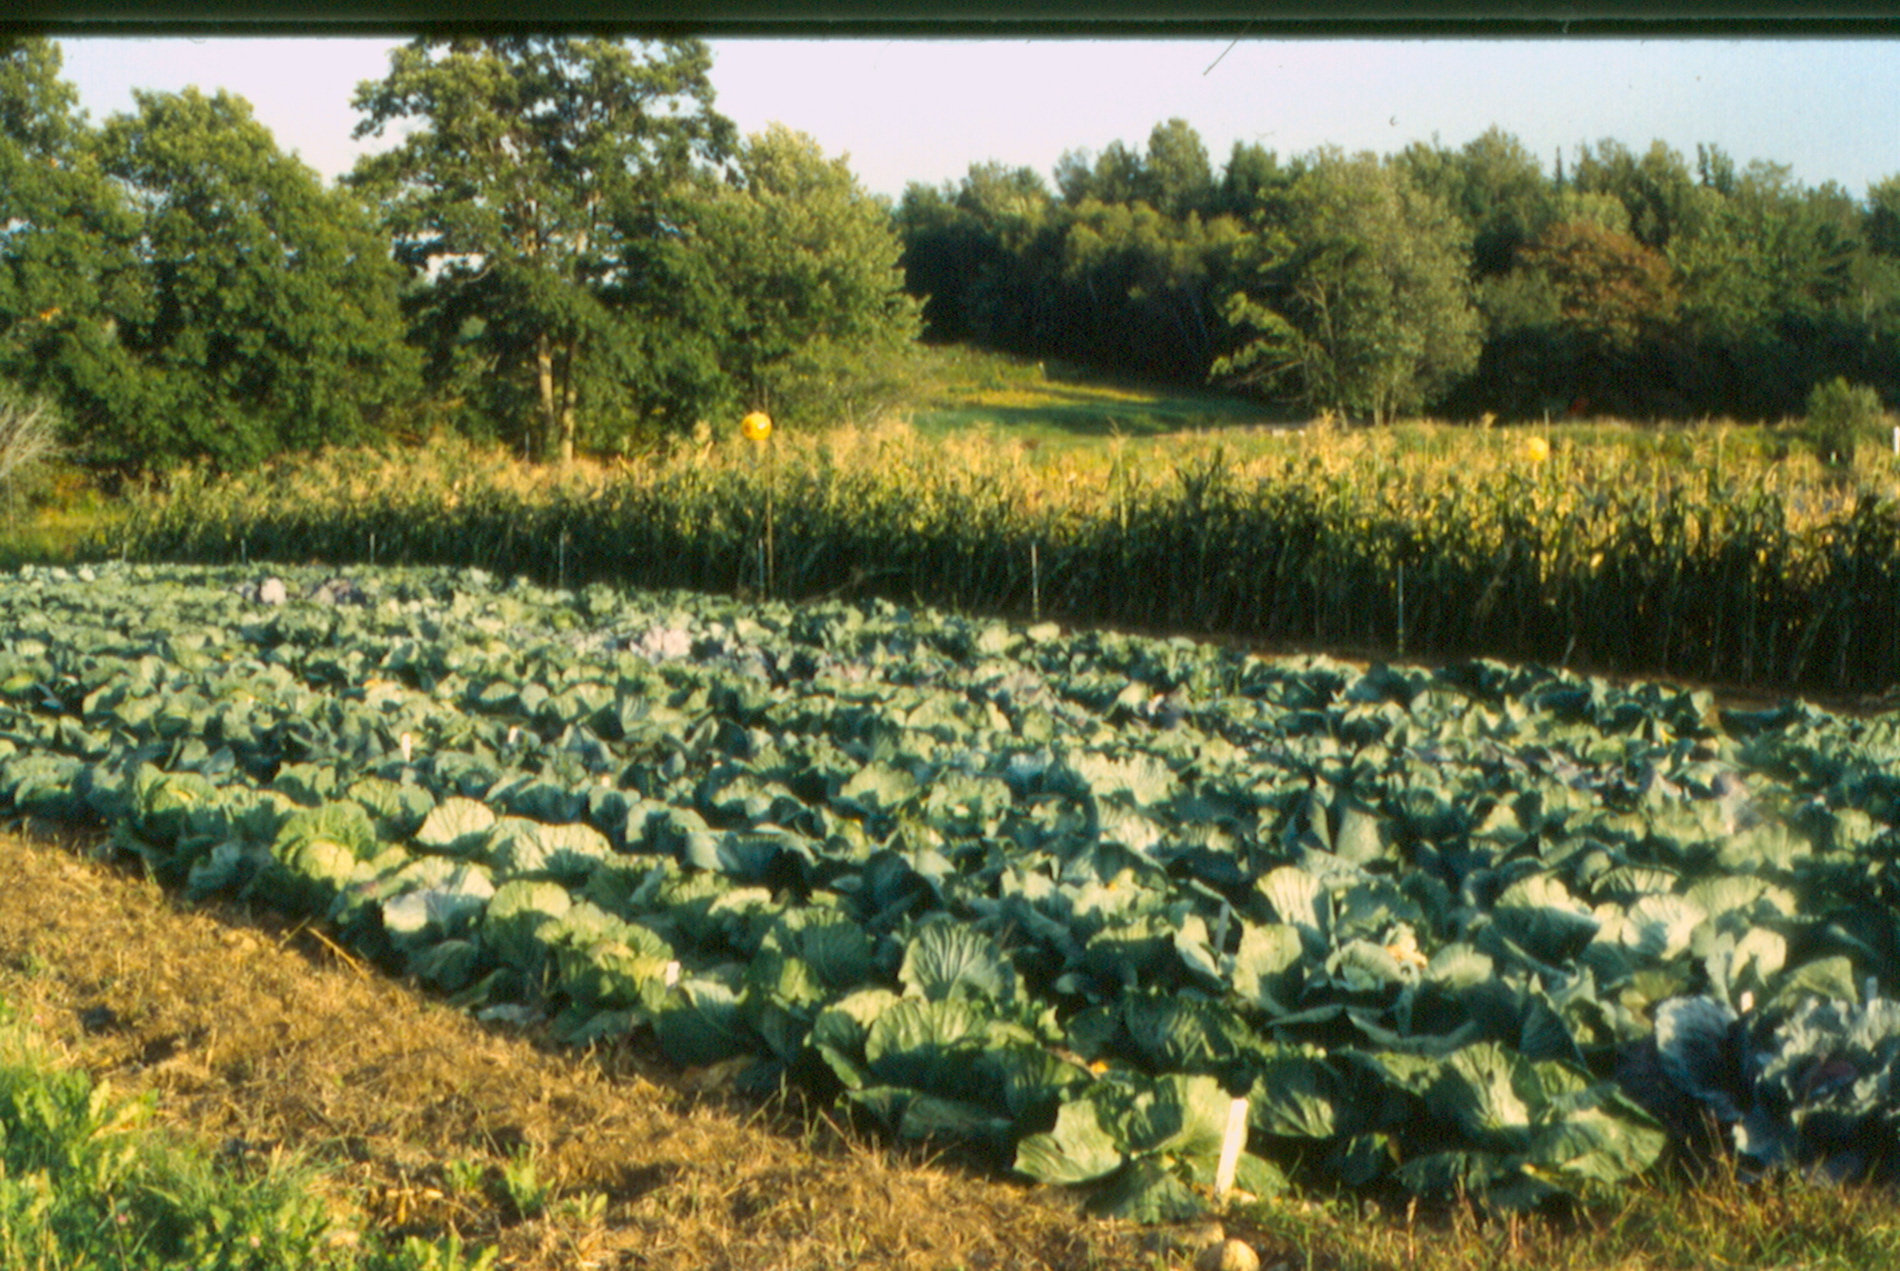 Cover Crop protects soil while corn and cabbage grows